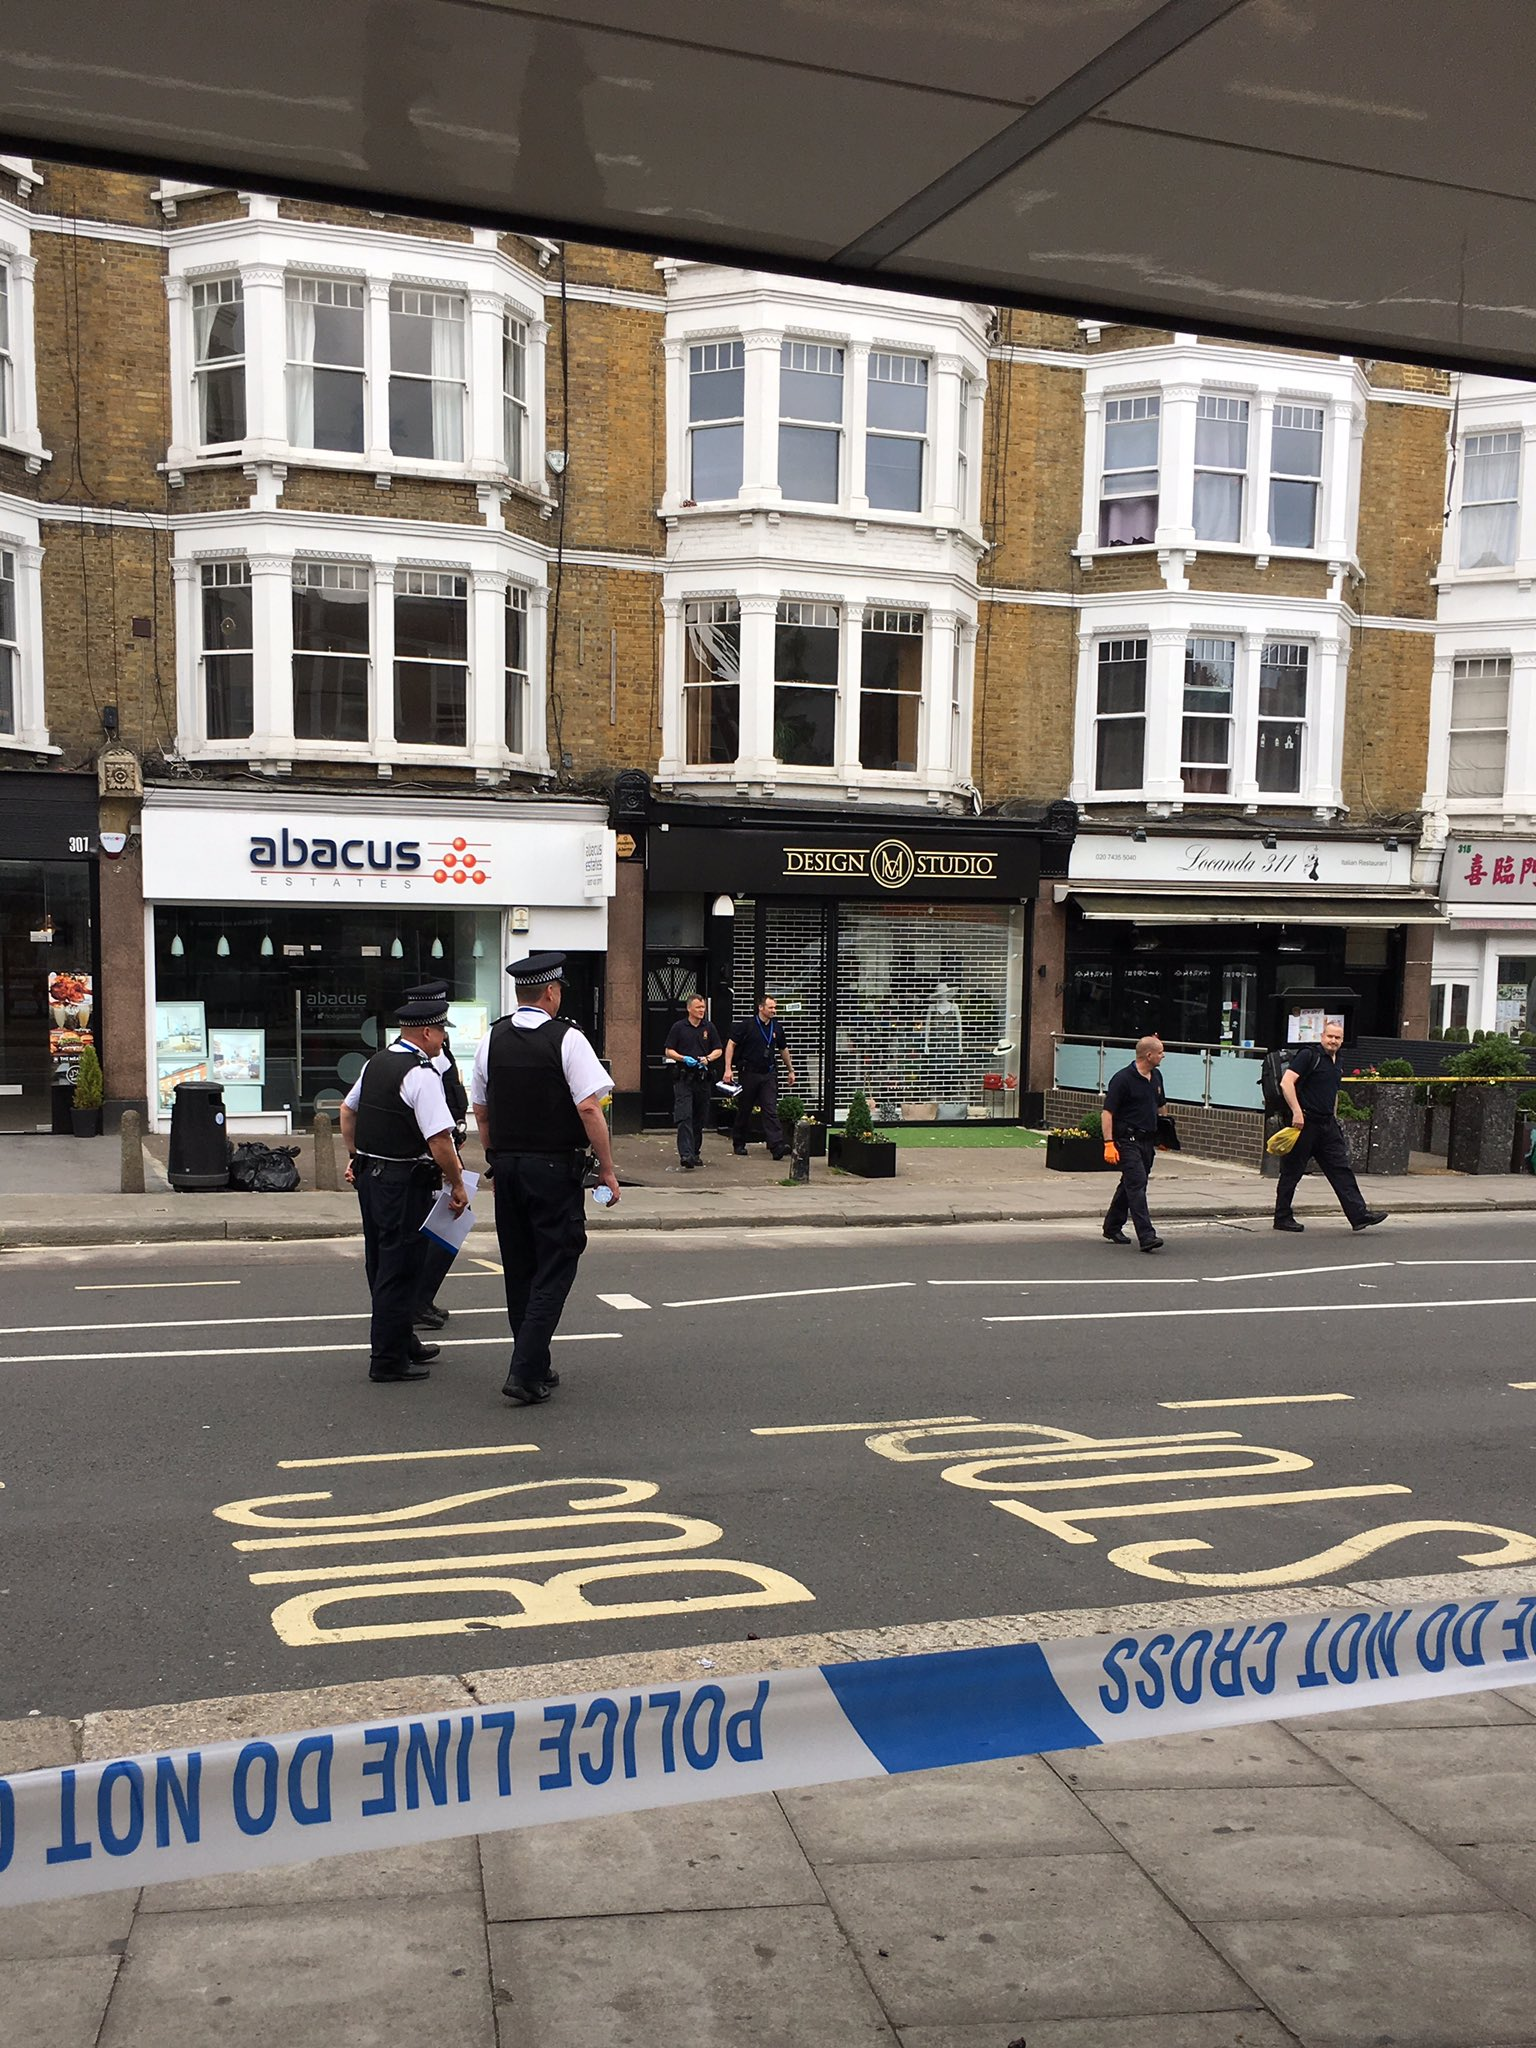 Incident over. Police leaving the building. West End Lane reopening. https://t.co/ms6aOdEnOo